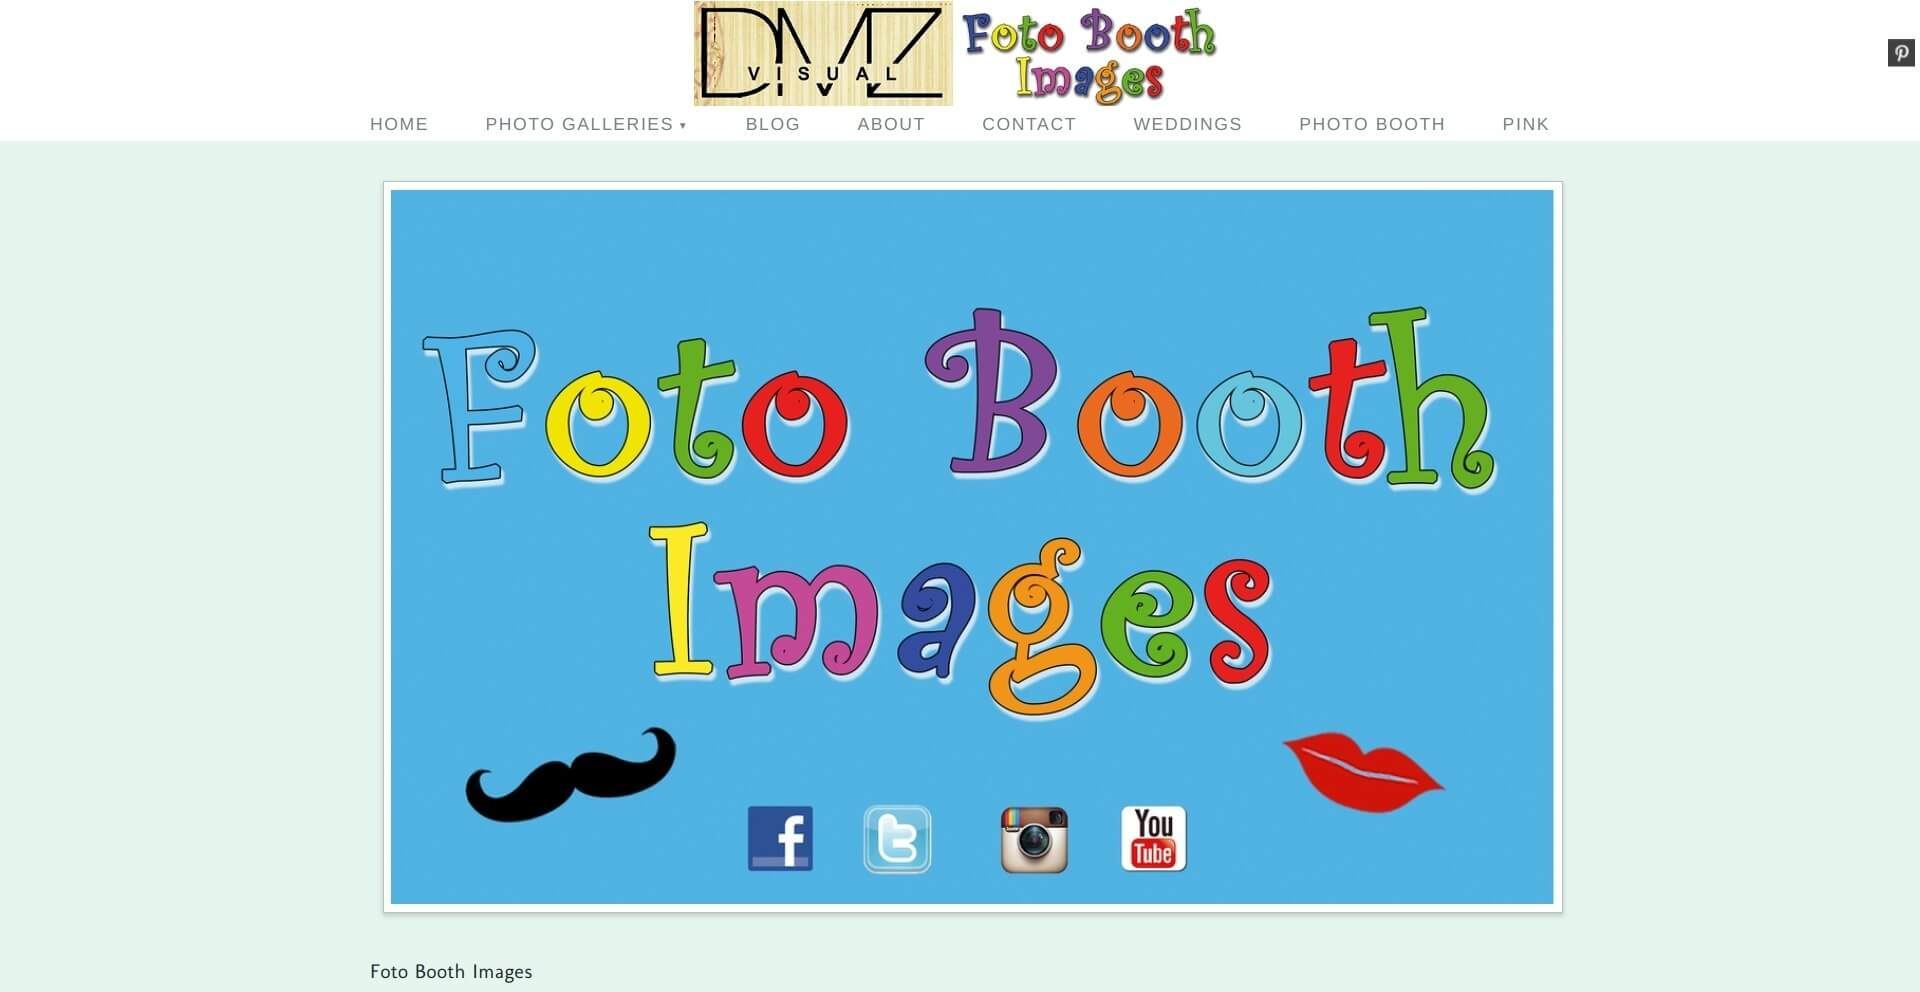 Foto Booth Images